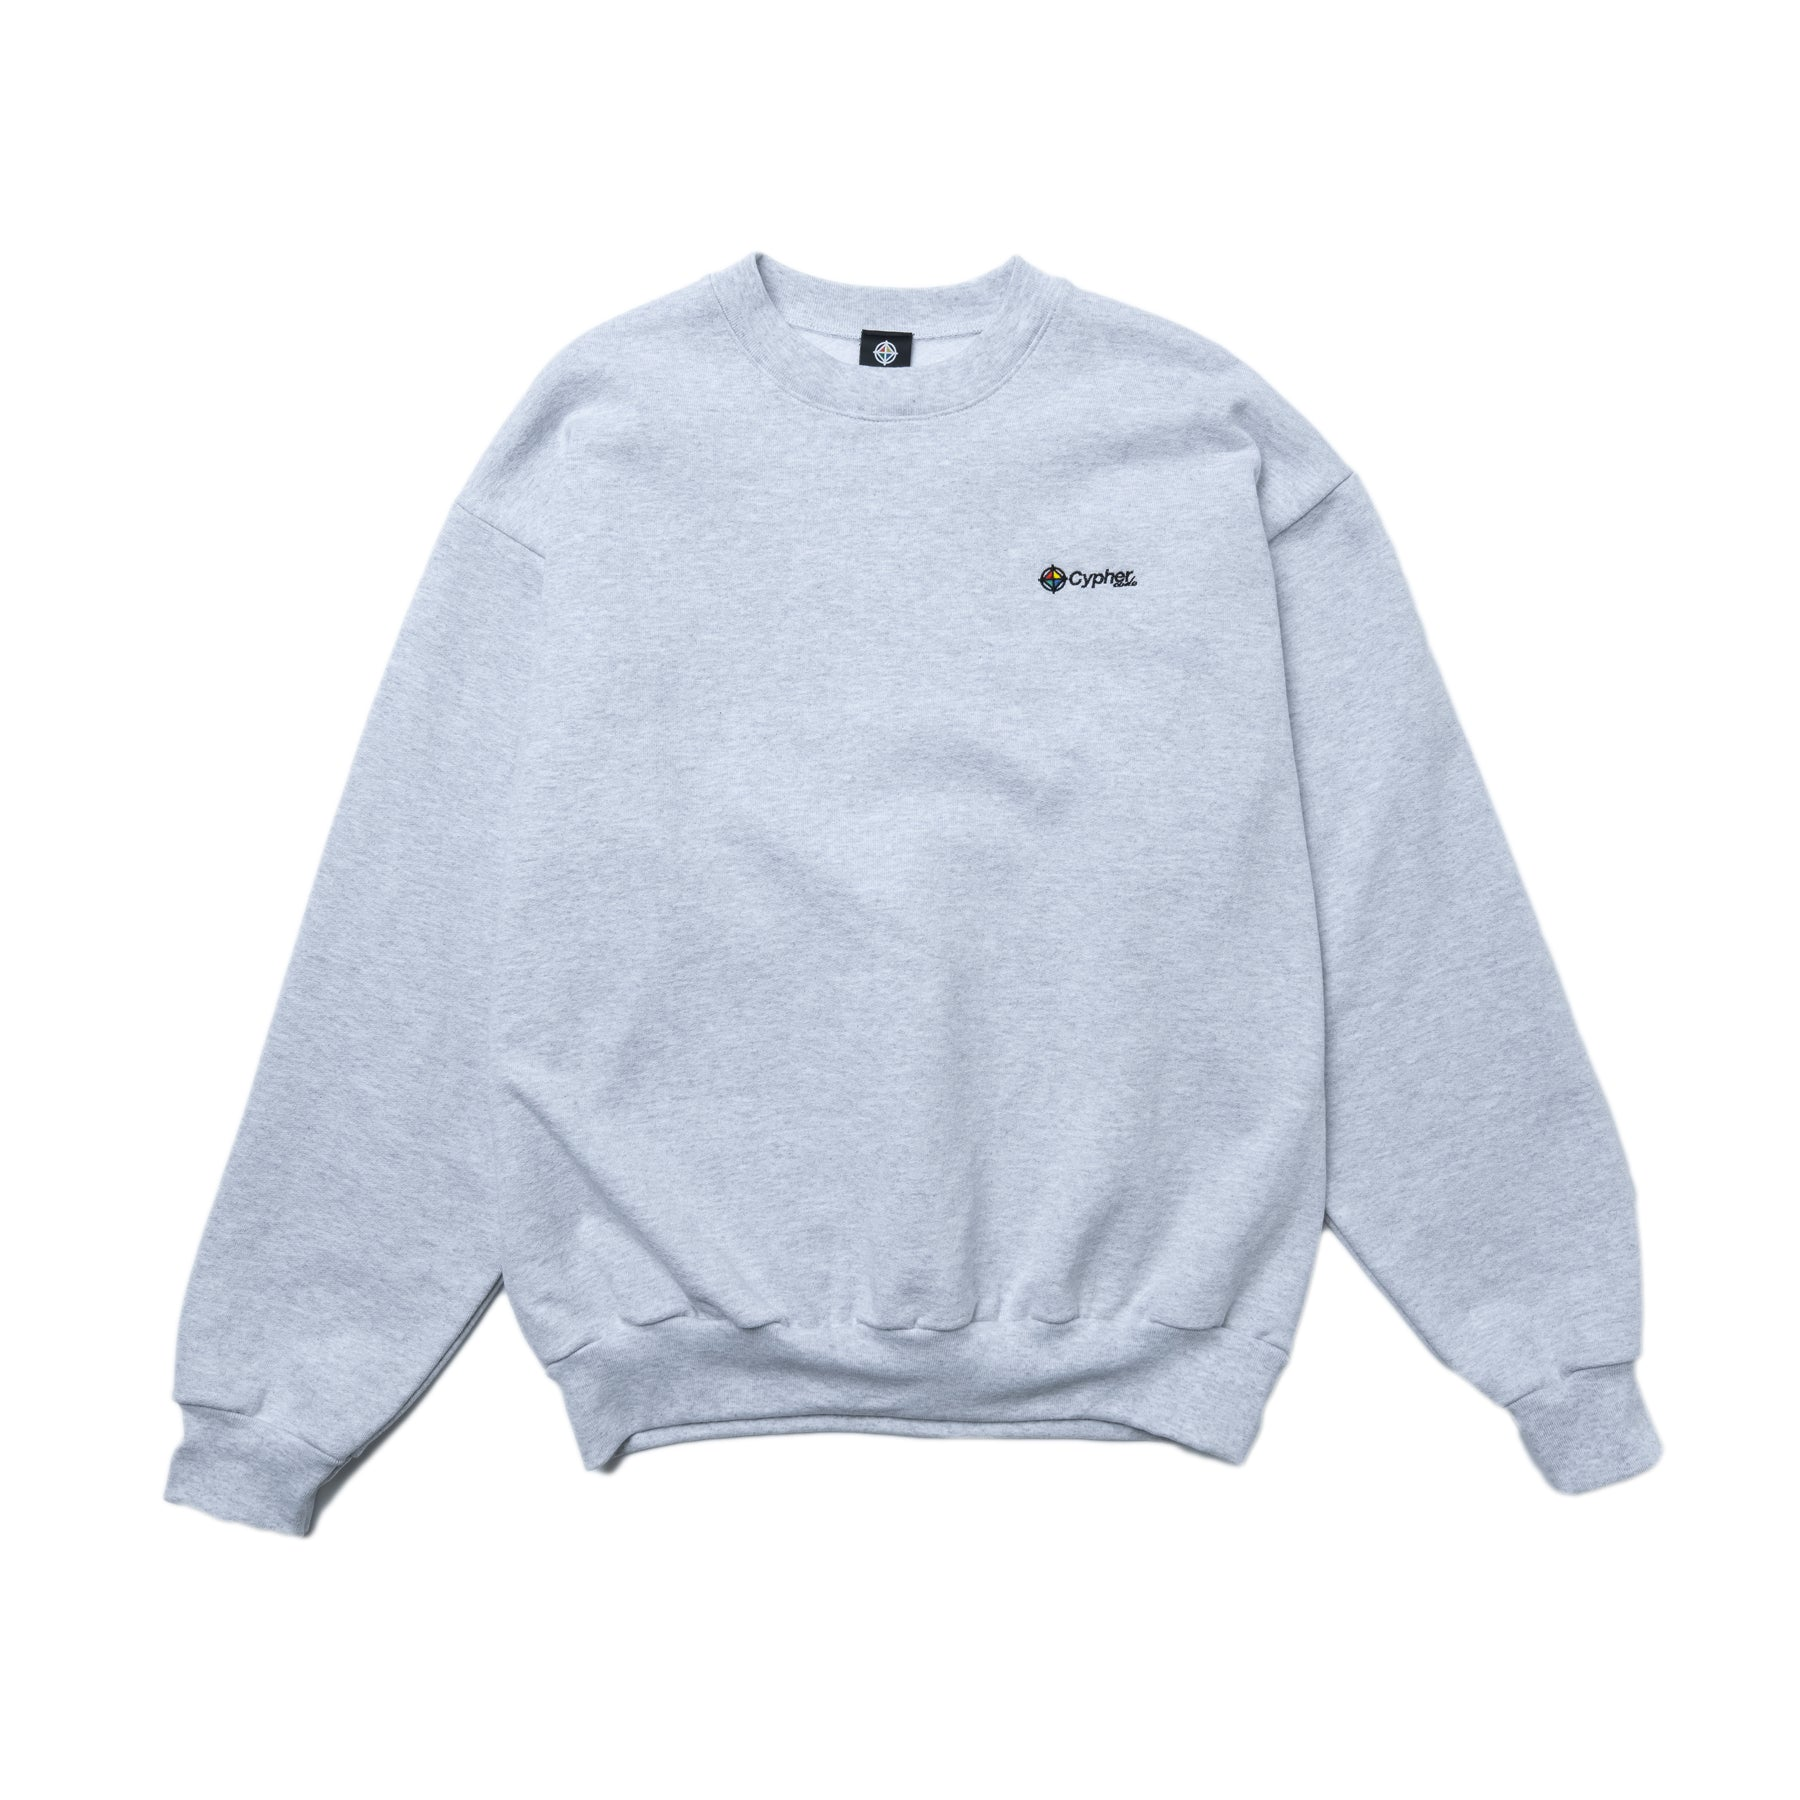 PREMIUM HEAVY WEIGHT SWEATSHIRTS